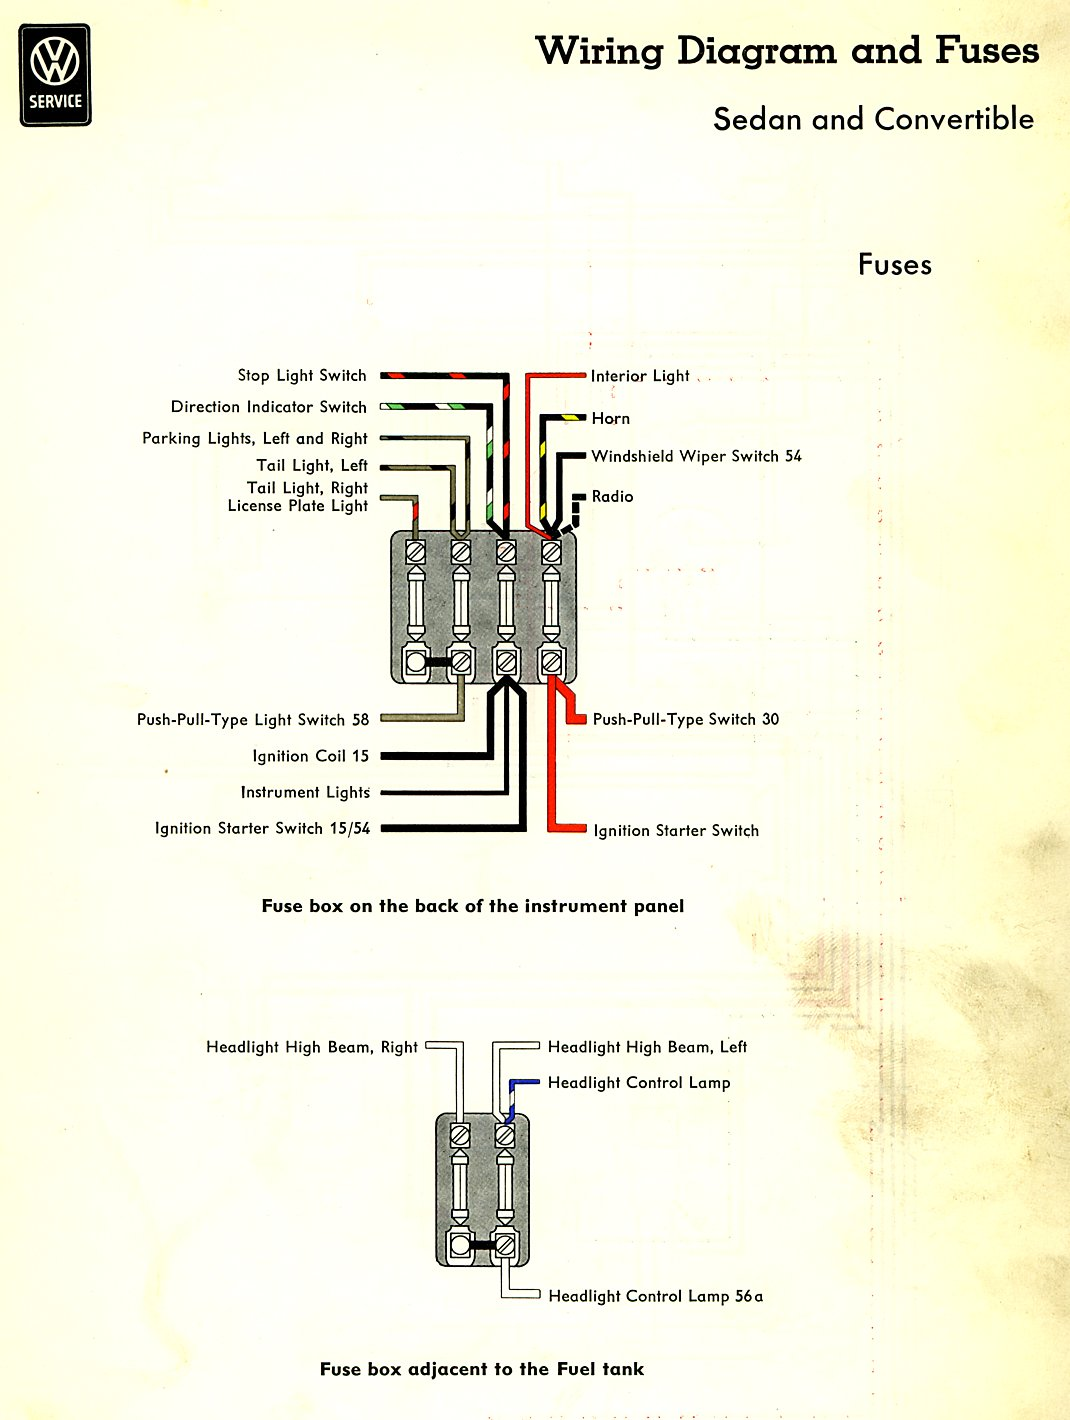 bug_58_fuses info from 1973 vw beetle fuse box diagram at crackthecode.co